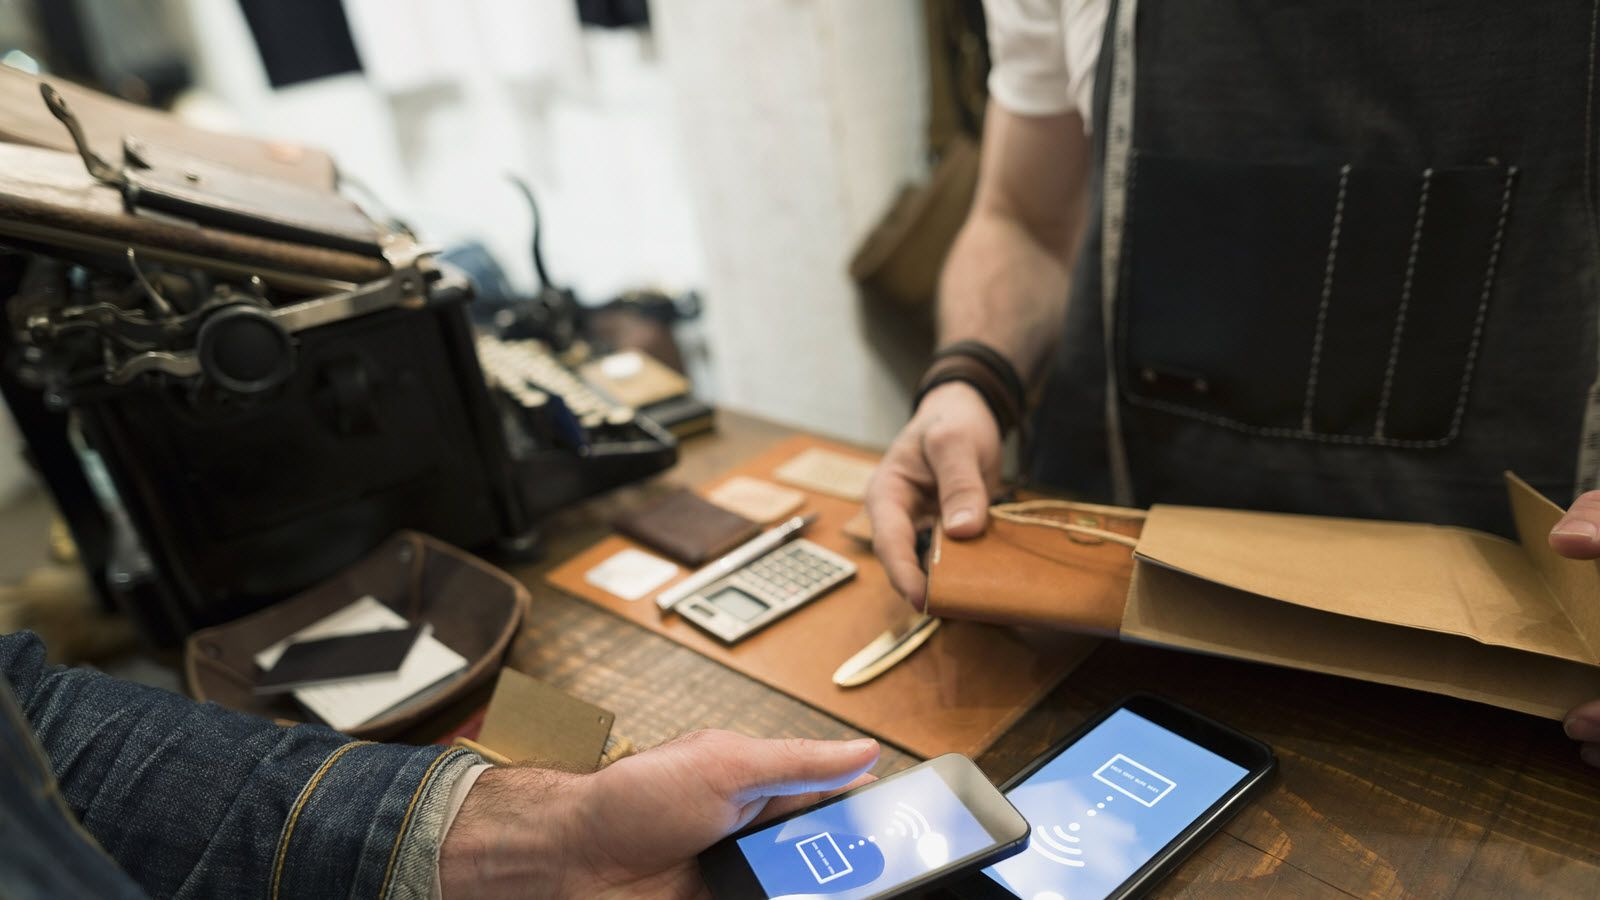 A customer uses smartphone to make a cashless purchase at small business